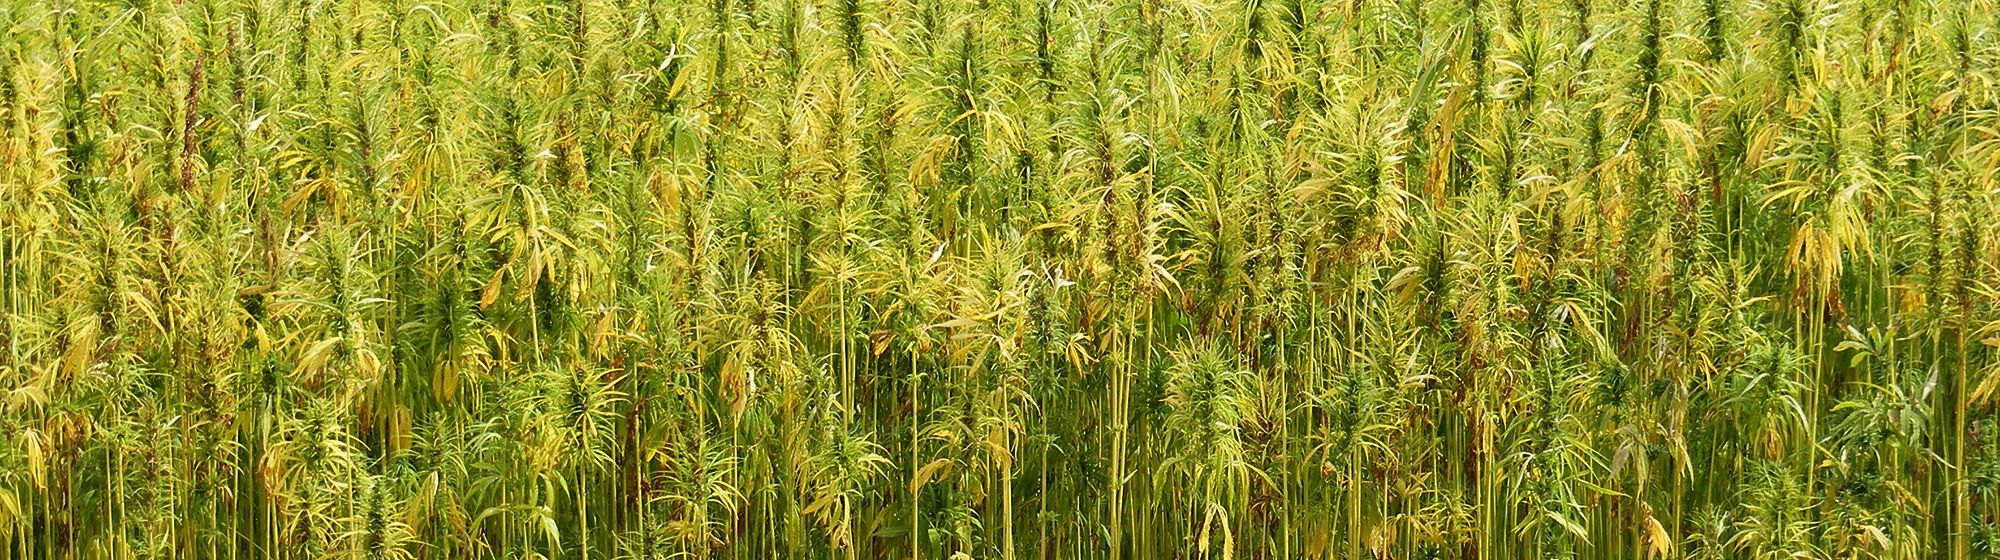 Hemp Crop in England